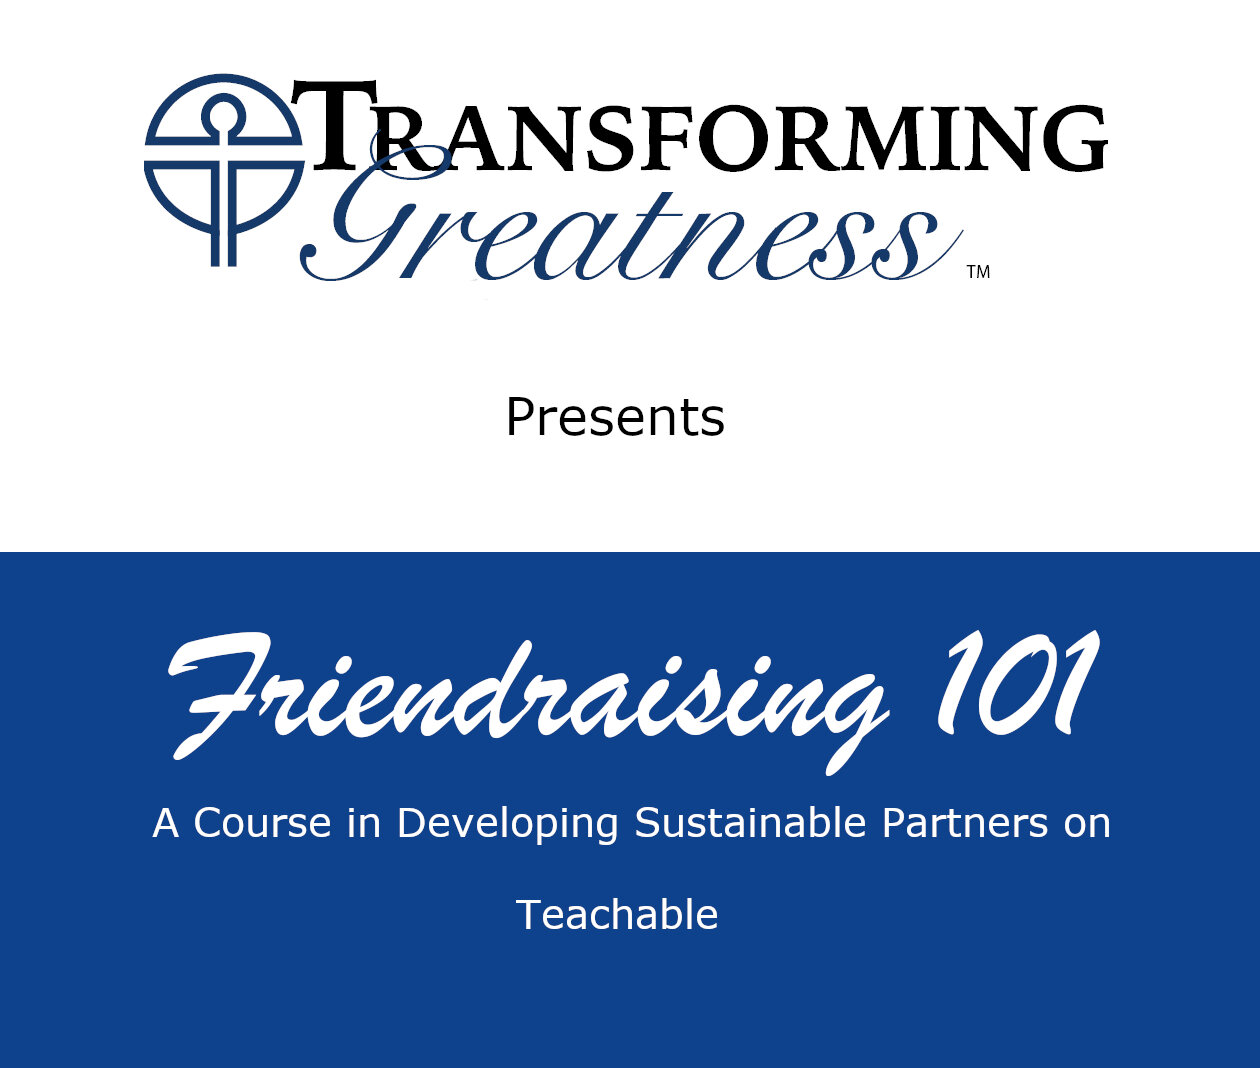 Friendraising-Teachable.jpg